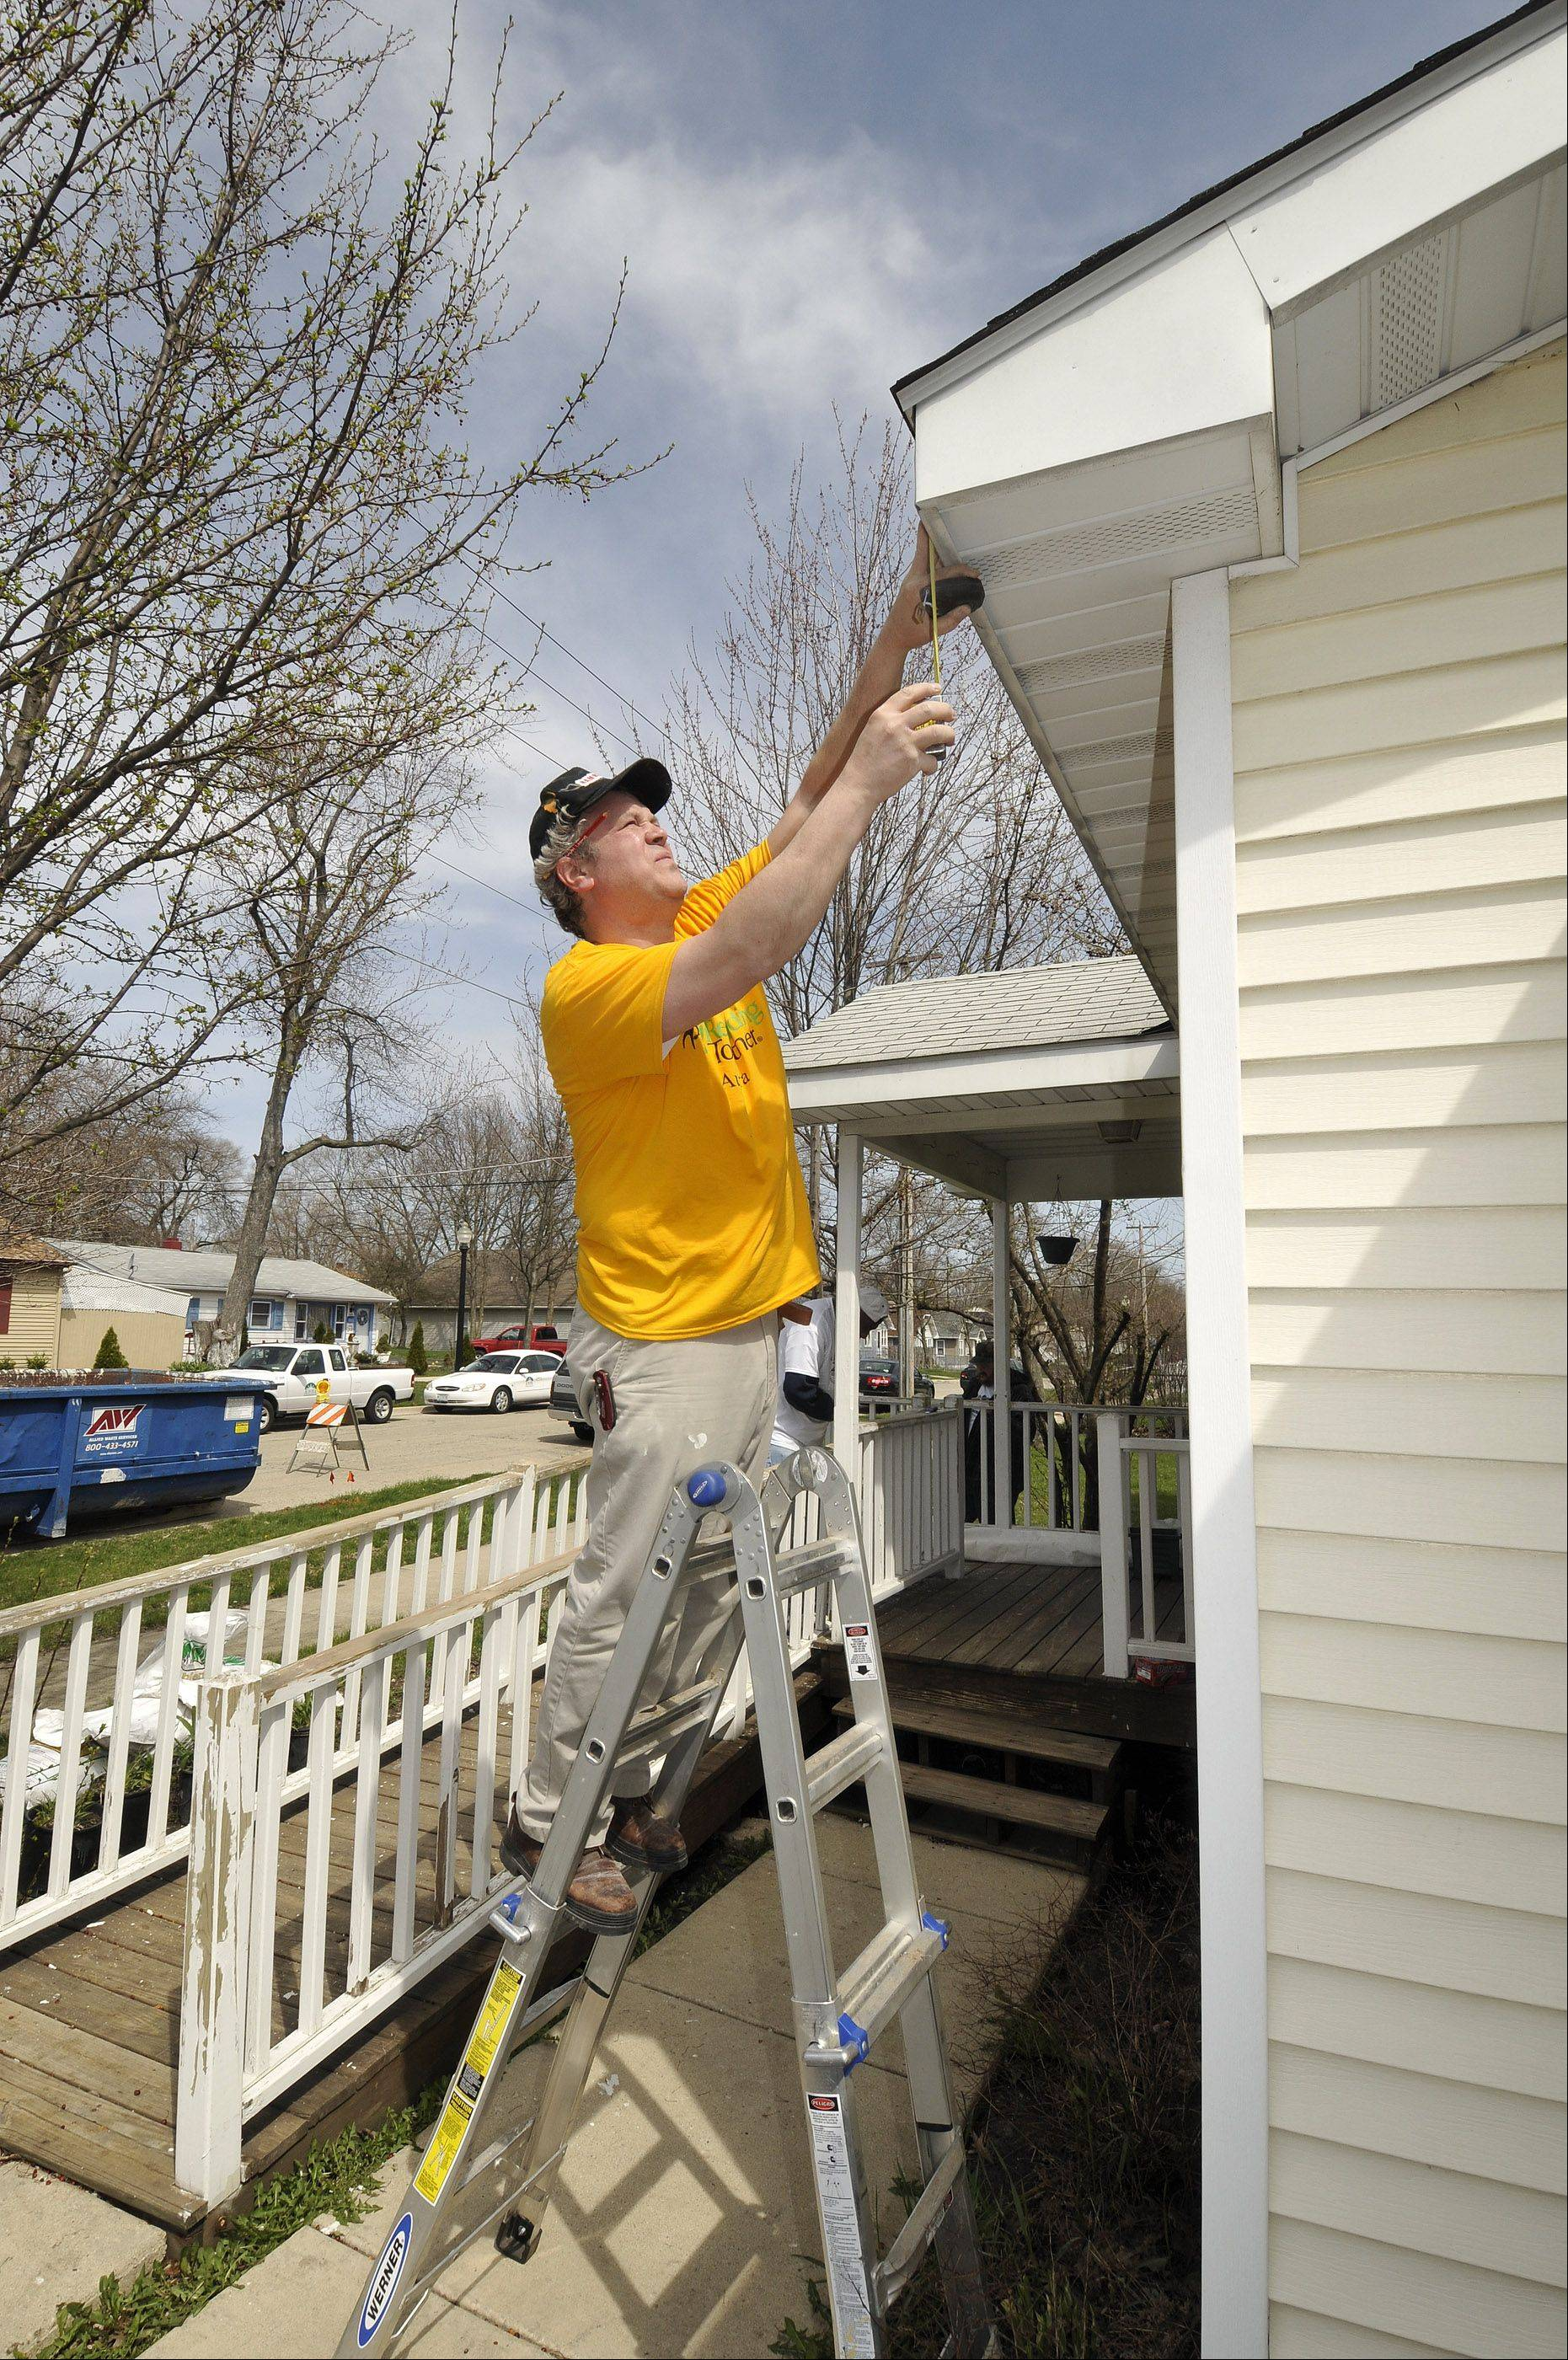 Warren Seidel from Naperville's Community Christian Church measures for a new gutter Friday at a home in Aurora's Pattersonville neighborhood as a volunteer group from his church participates in Rebuilding Together Aurora's 20th annual April home repair event.